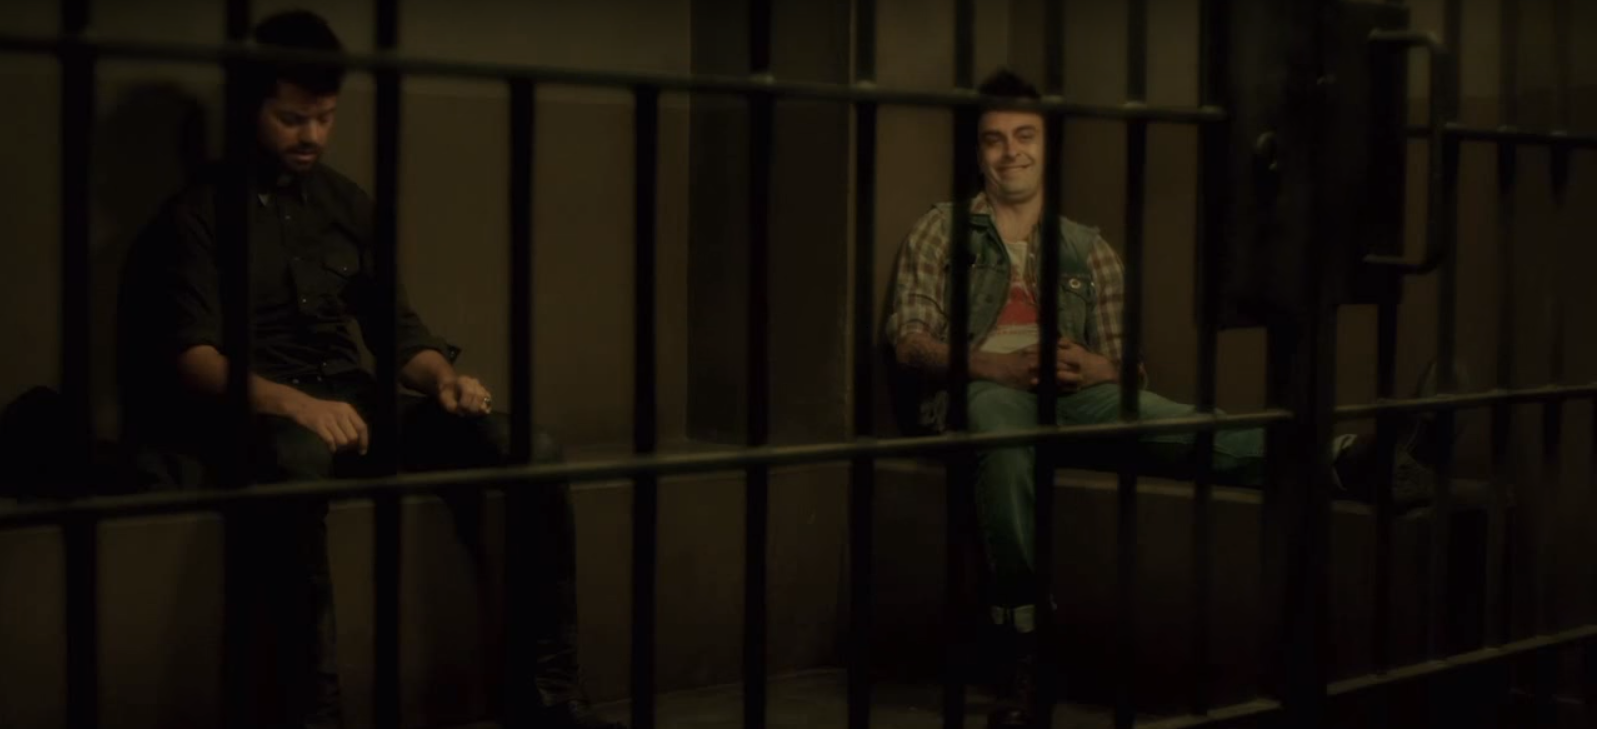 Jesse and Cassidy in Jail